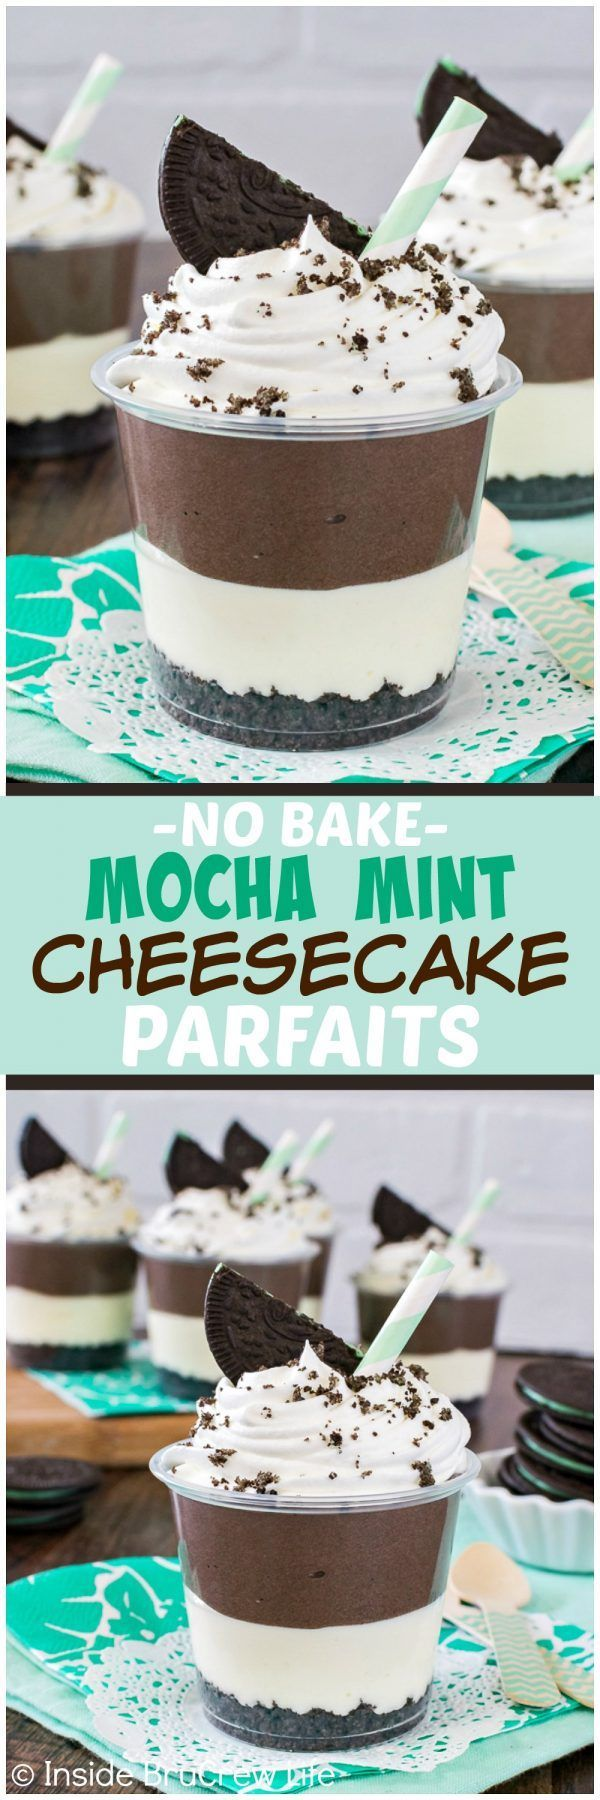 No Bake Mocha Mint Cheesecake Parfaits - layers of mocha and mint cheesecake and cookie crumbs makes this an easy no bake dessert recipe for summer picnics!